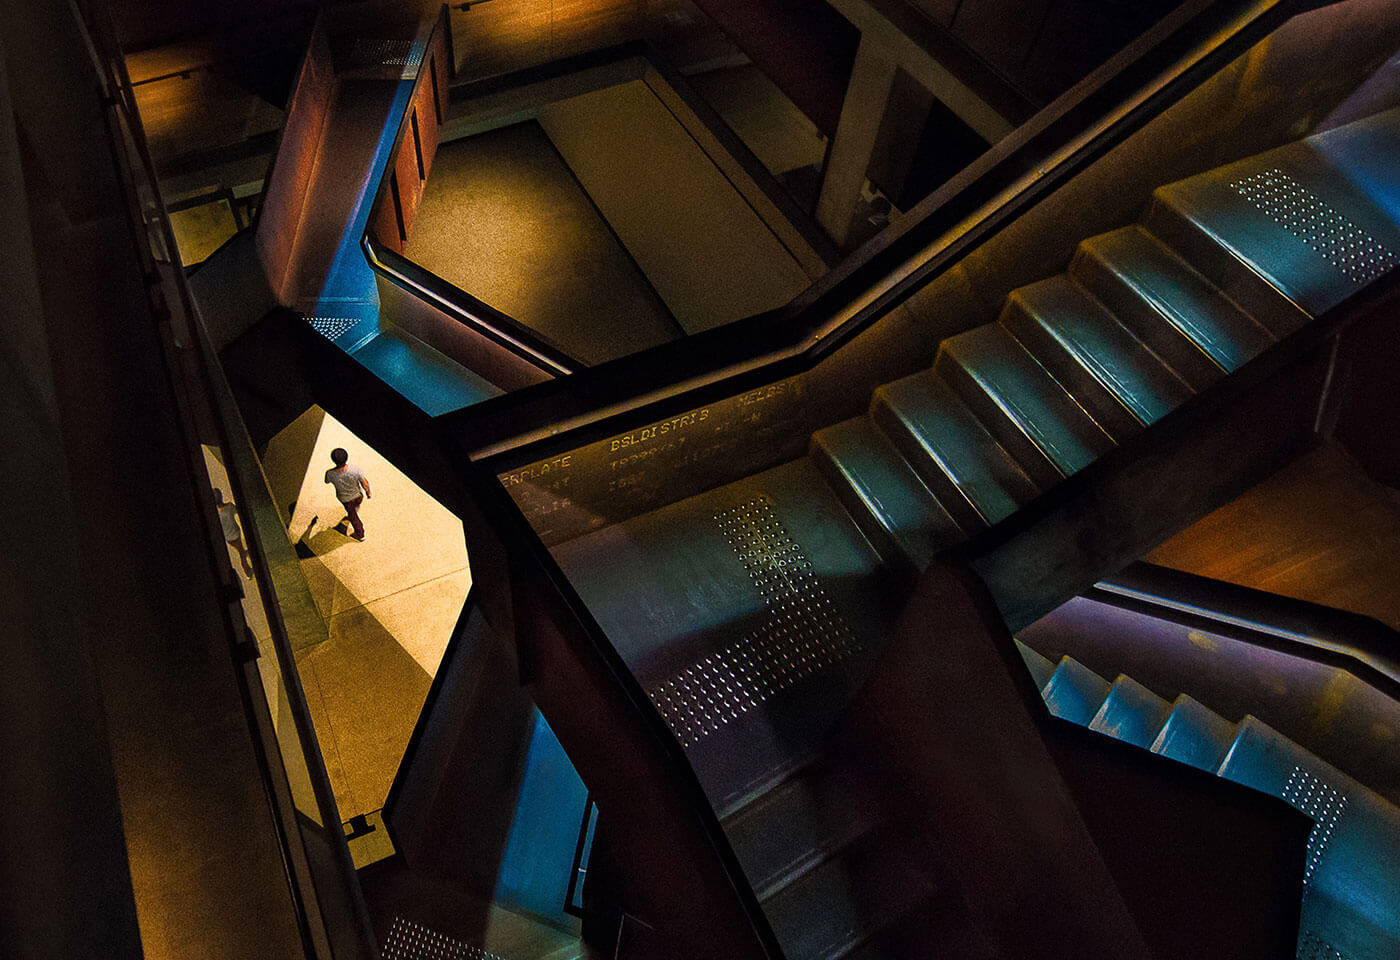 Image of stairs by Steve Scalone